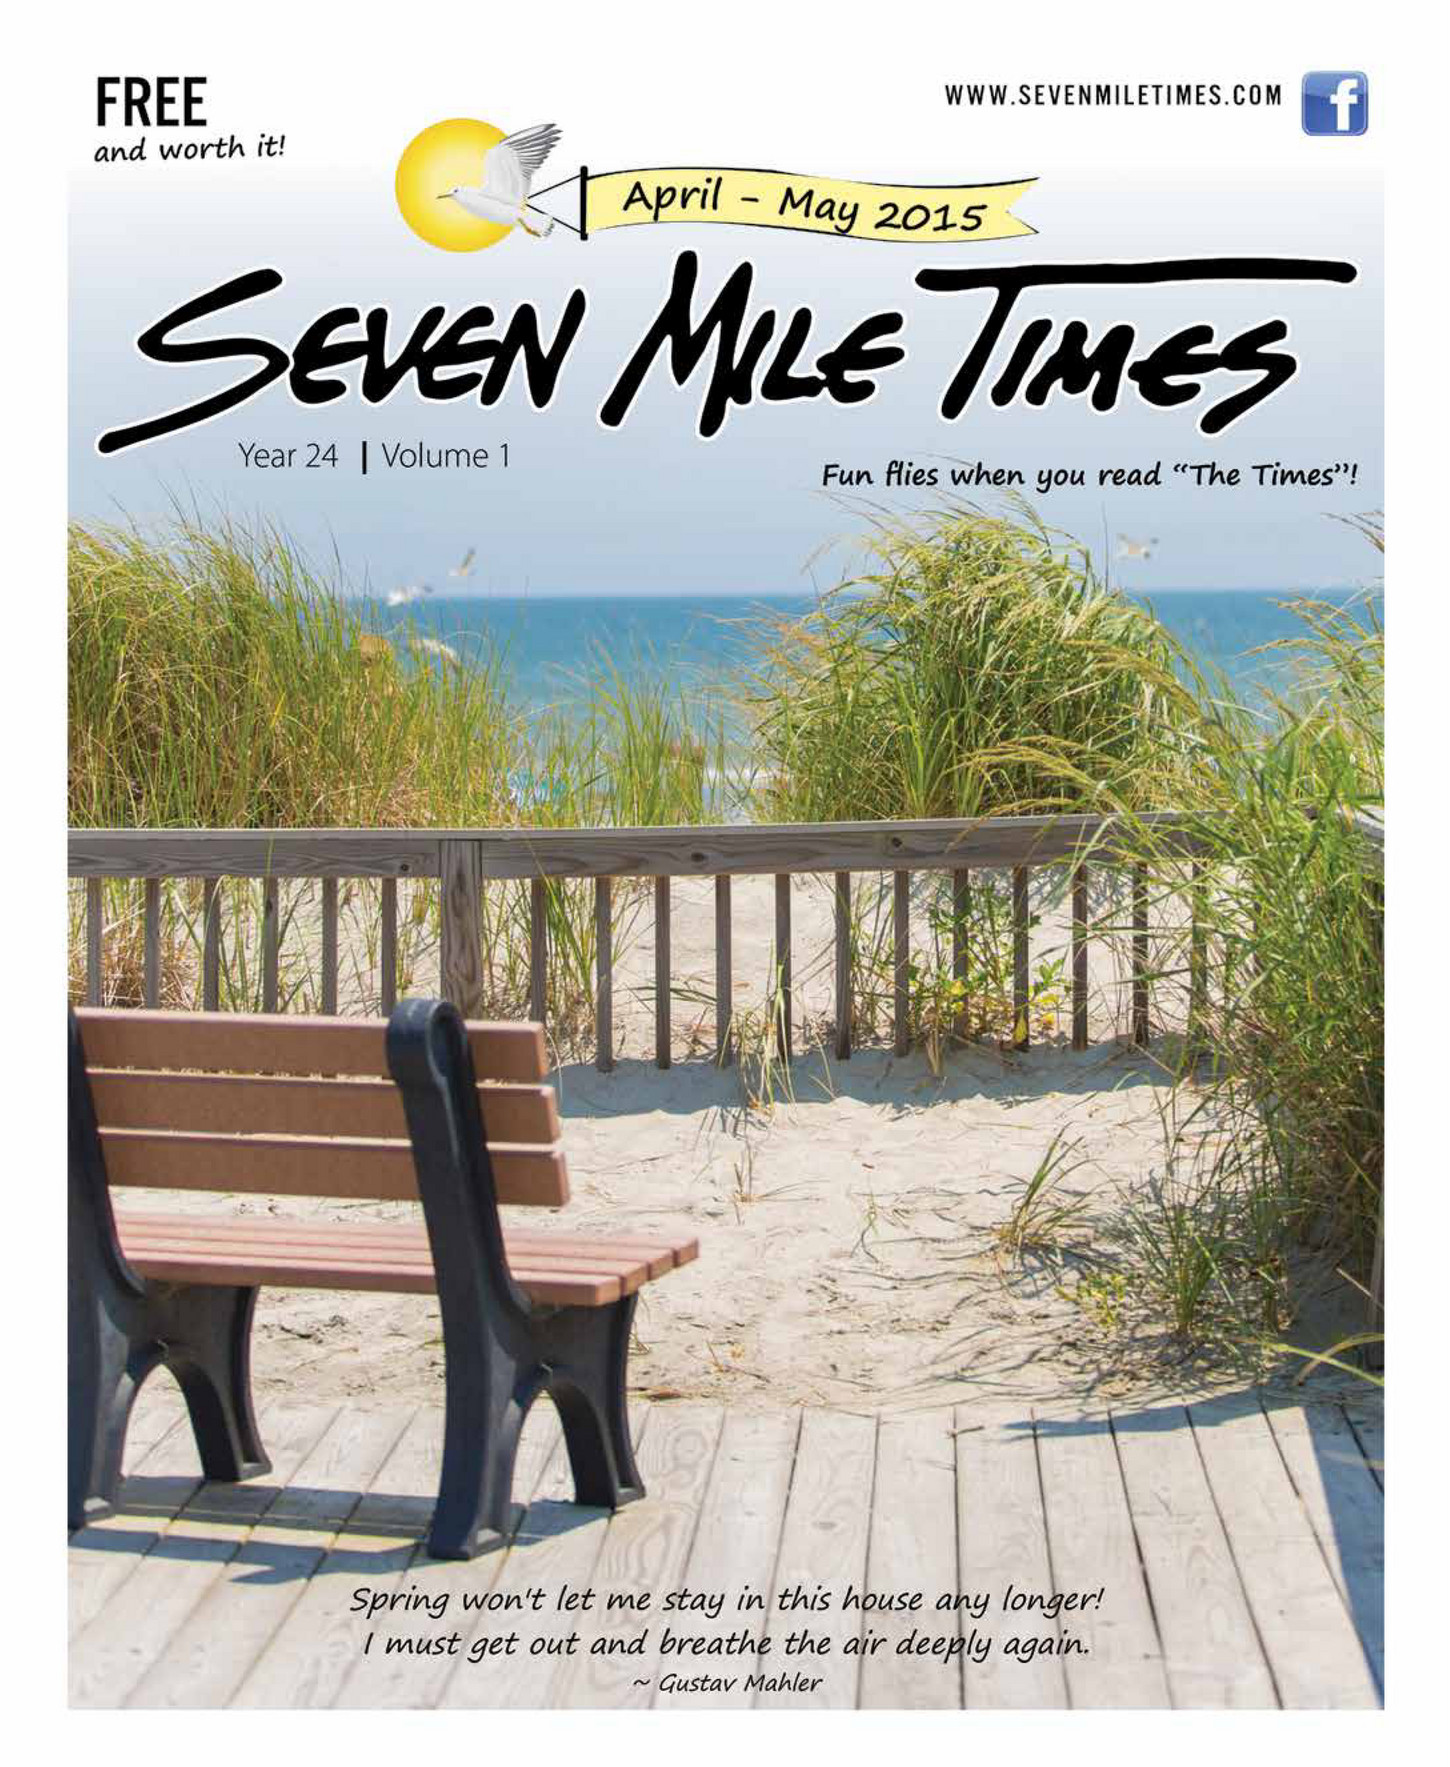 Seven mile times spring 2015 page 74 75 created with publitas nvjuhfo Choice Image